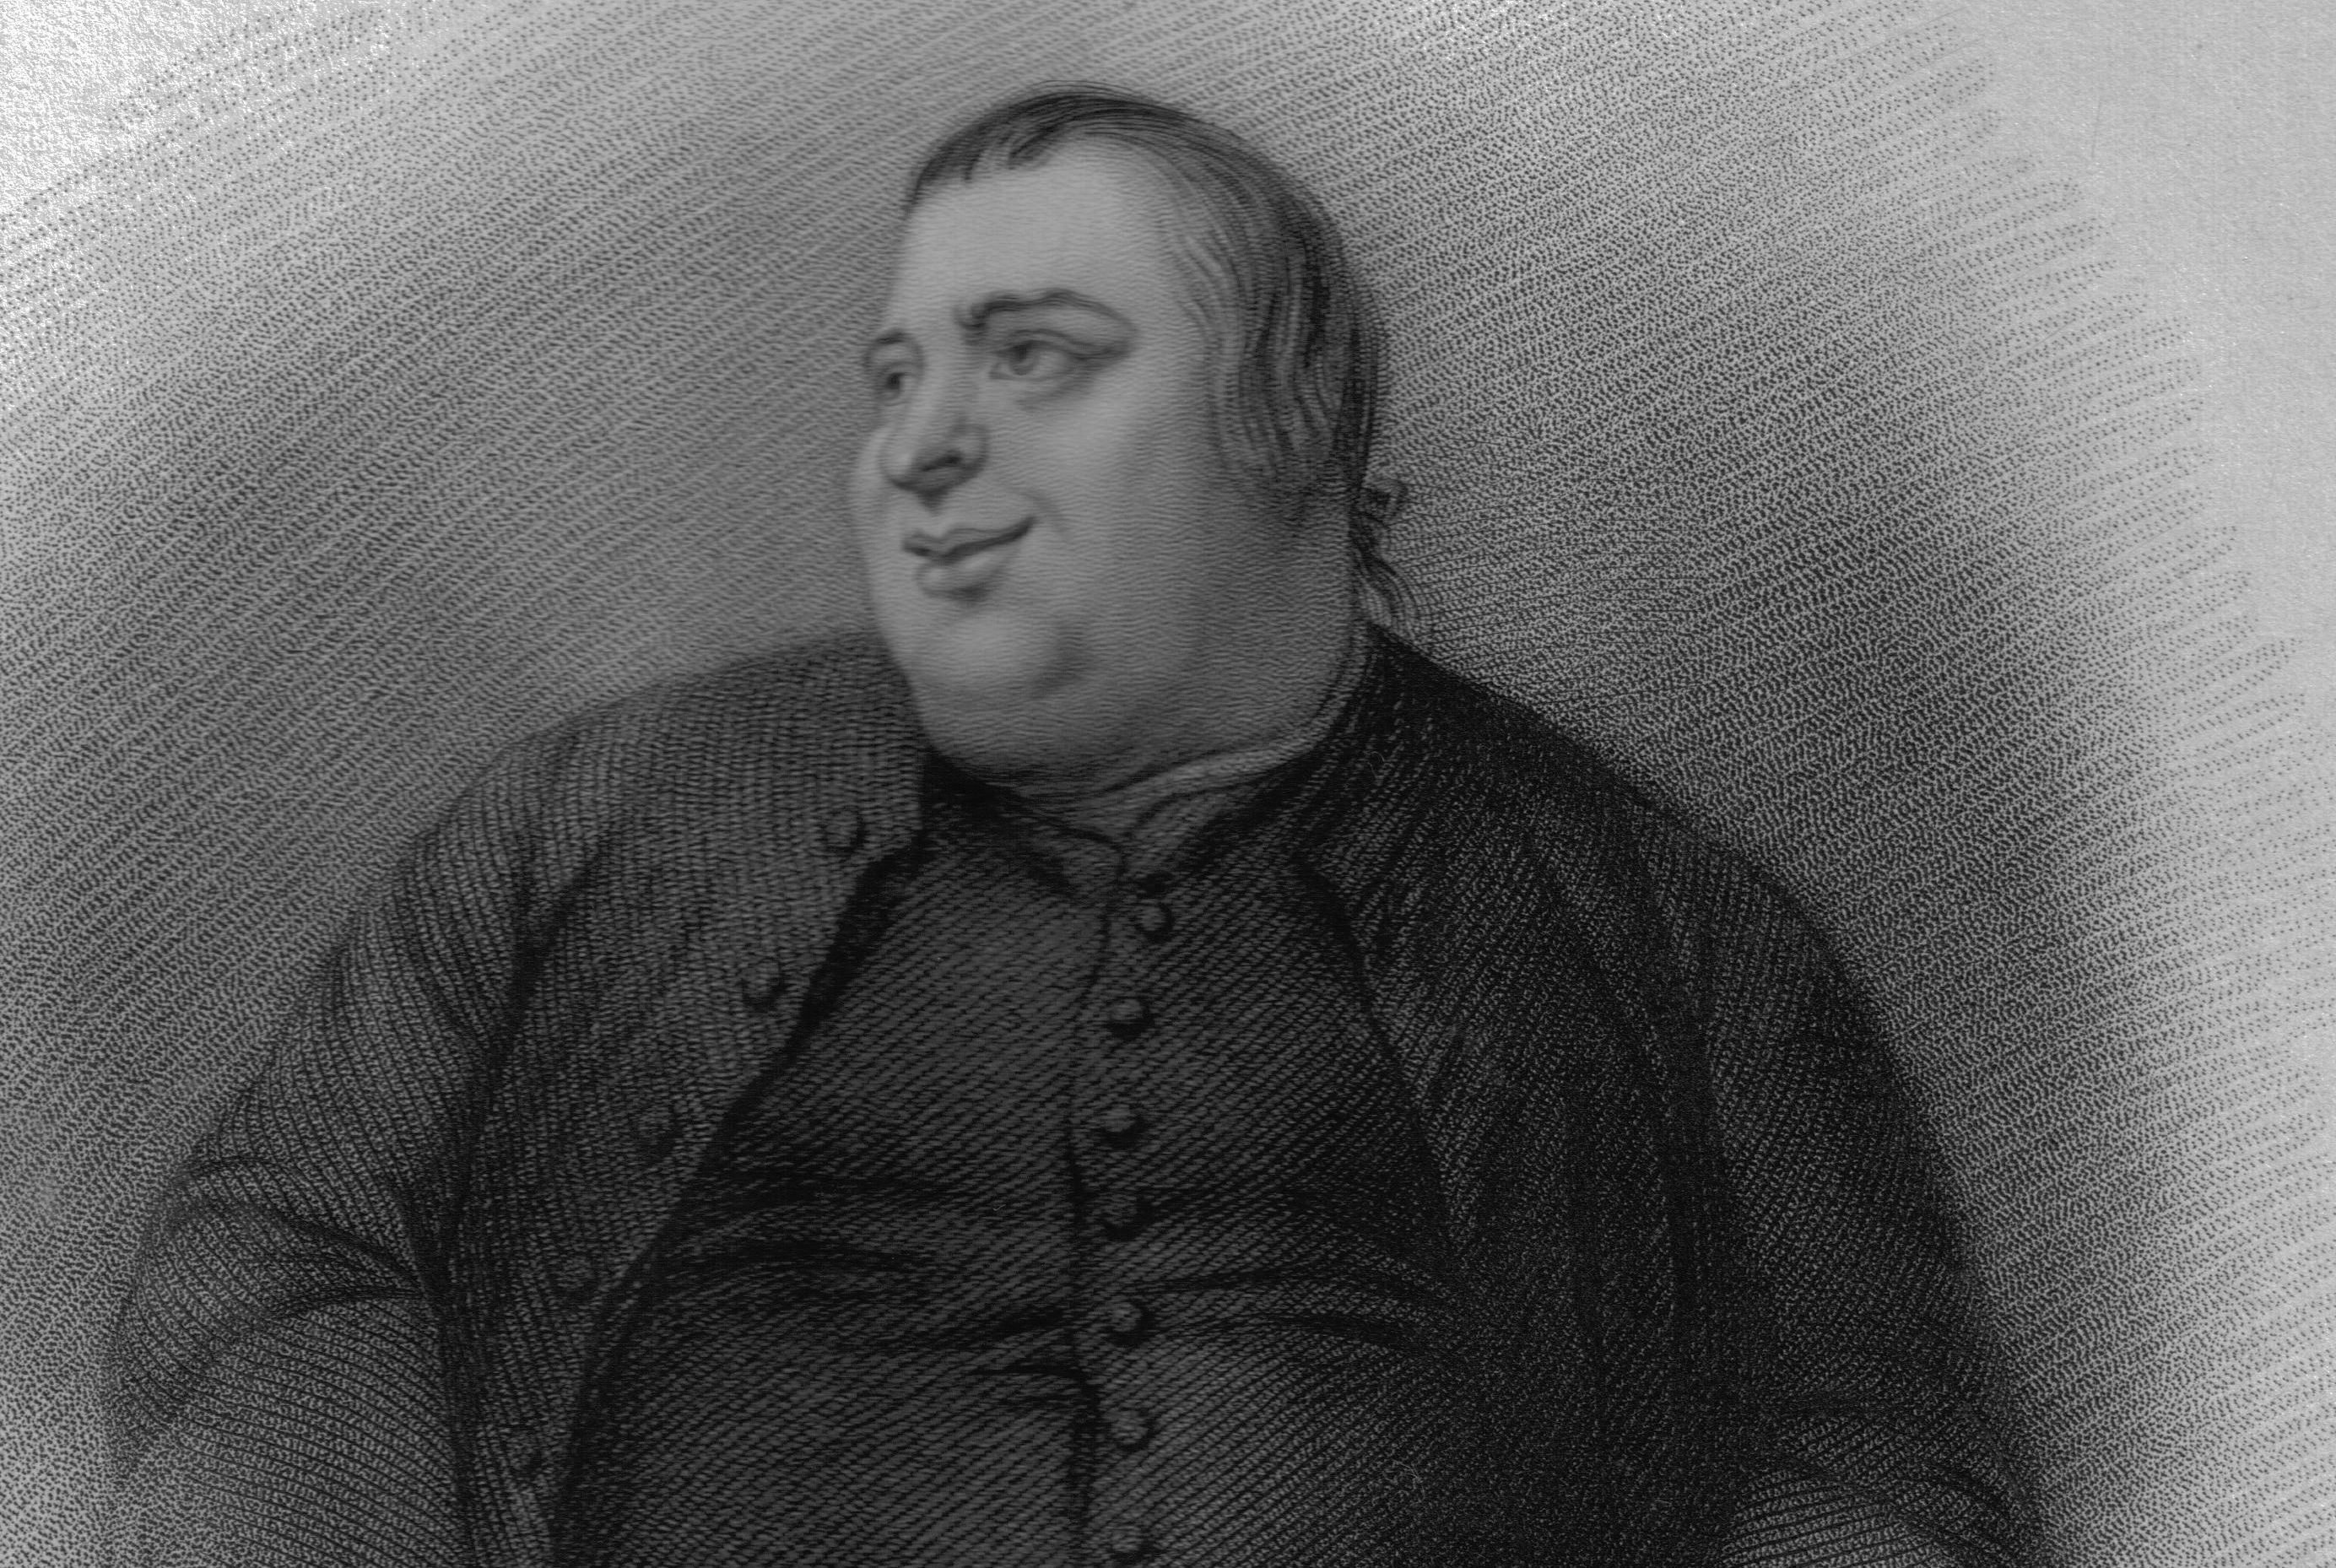 25 Great Insults From 18th Century British Slang | Mental Floss